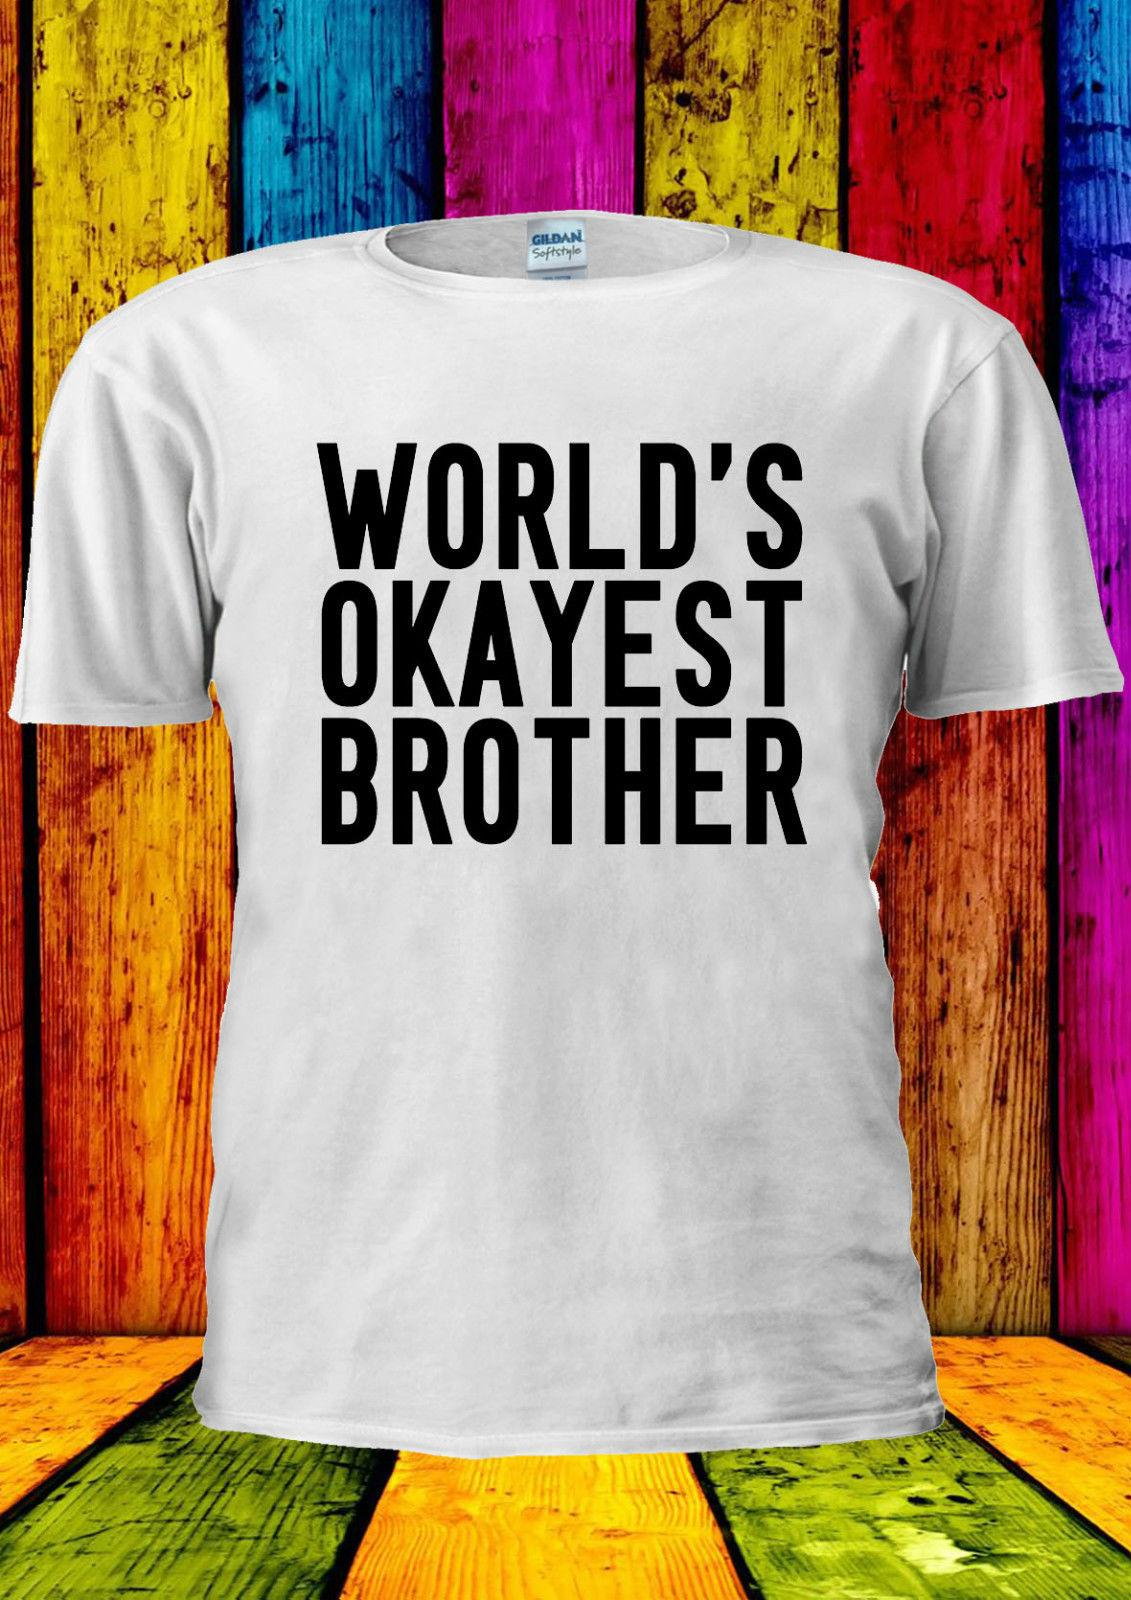 6a58e0aa9643 World S Okayest Brother T Shirt Vest Tank Top Men Women Unisex 2264 Pride Dark  T Shirt White Black Grey Red Trousers Tshirt All T Shirt Order Tee Shirts  ...